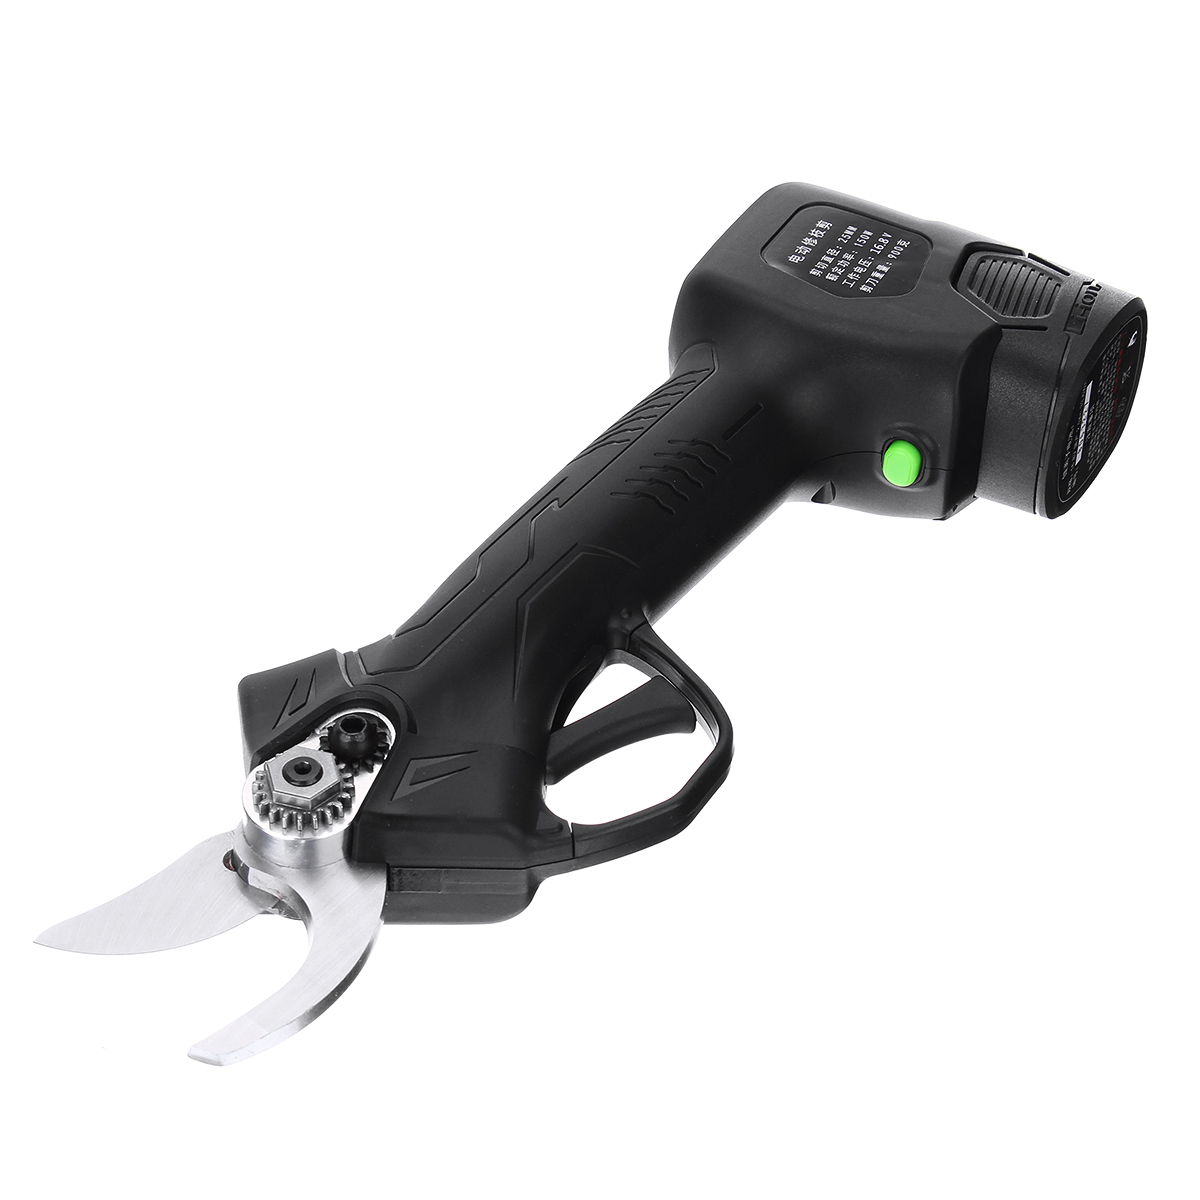 Rechargeable Electric Garden Scissors for Pruning Stems and Branches with Durable Battery and 2.5 CM Maximum Cutting 9